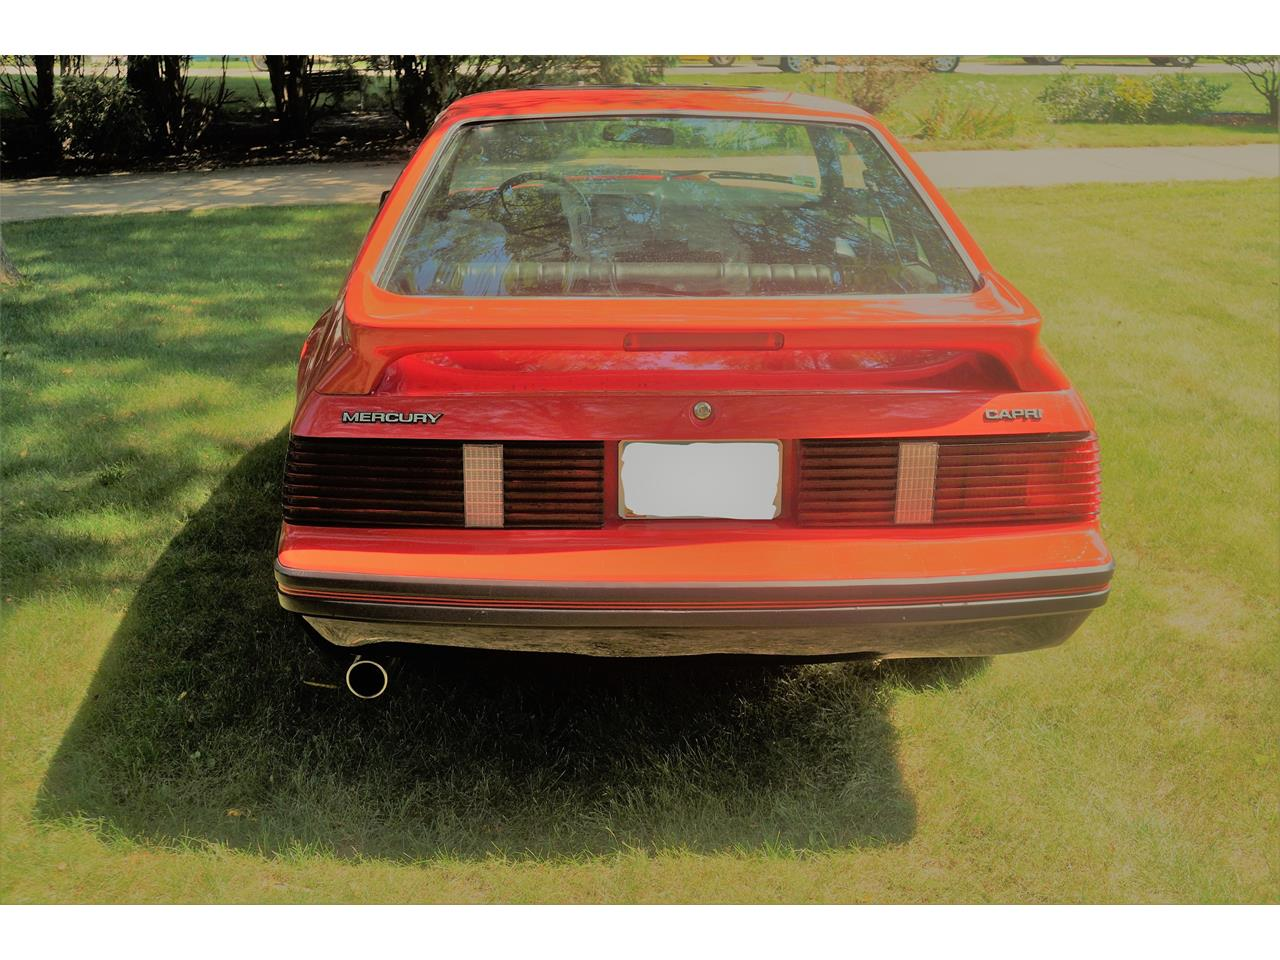 Large Picture of '79 Mercury Capri located in Iowa Offered by a Private Seller - LBIN